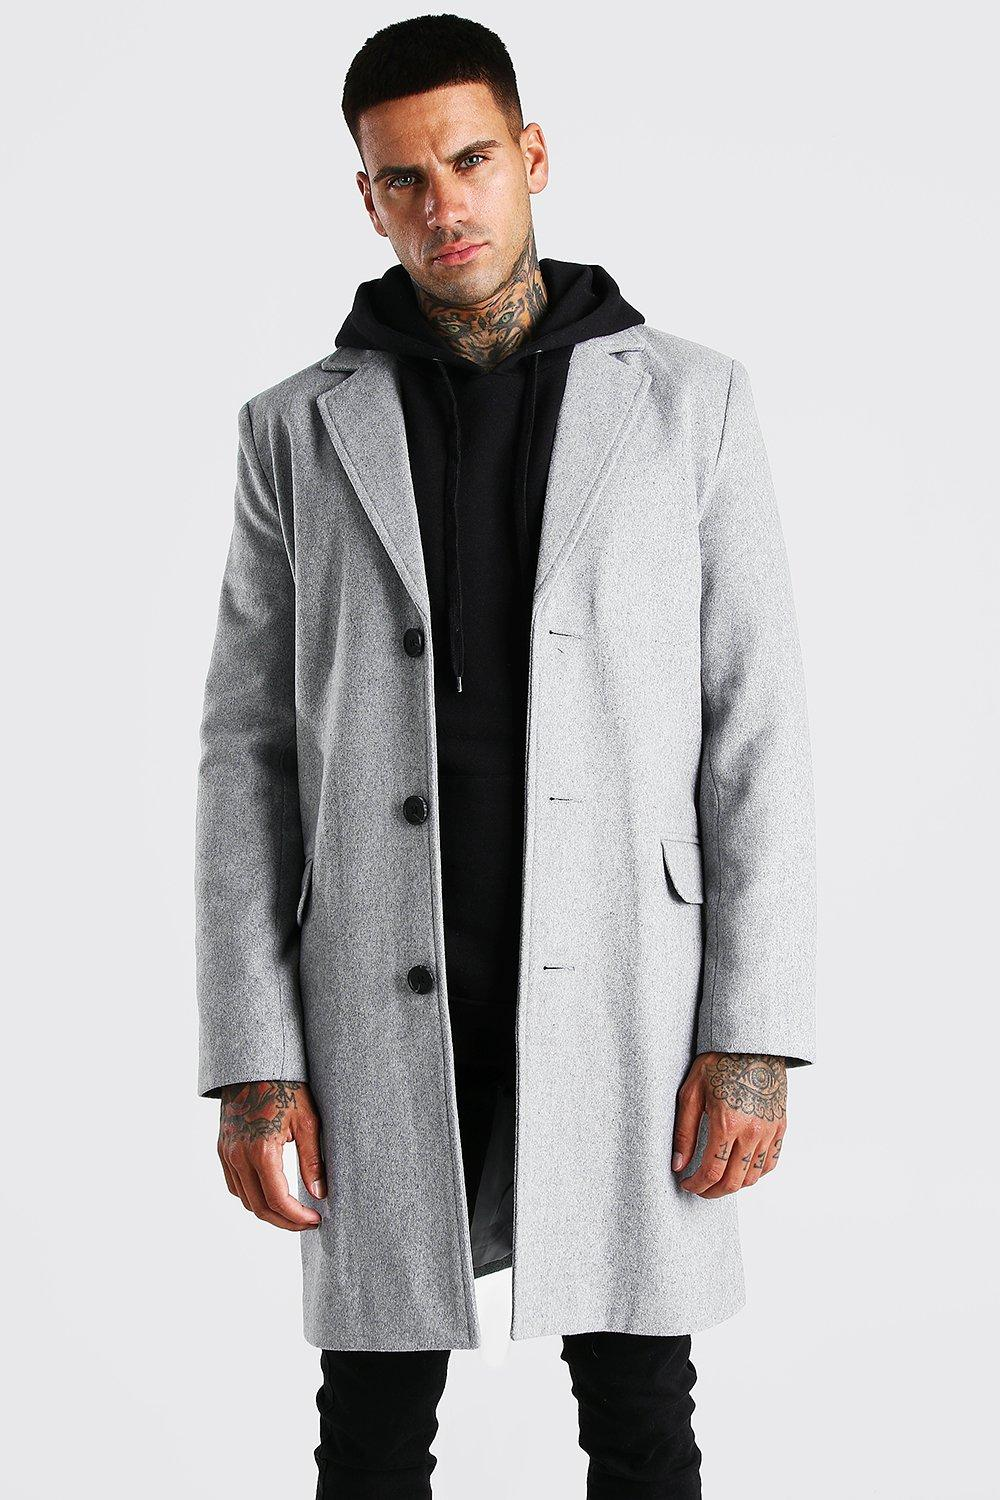 Vintage Christmas Gift Ideas Mens Single Breasted Wool Mix Overcoat - Grey $48.00 AT vintagedancer.com